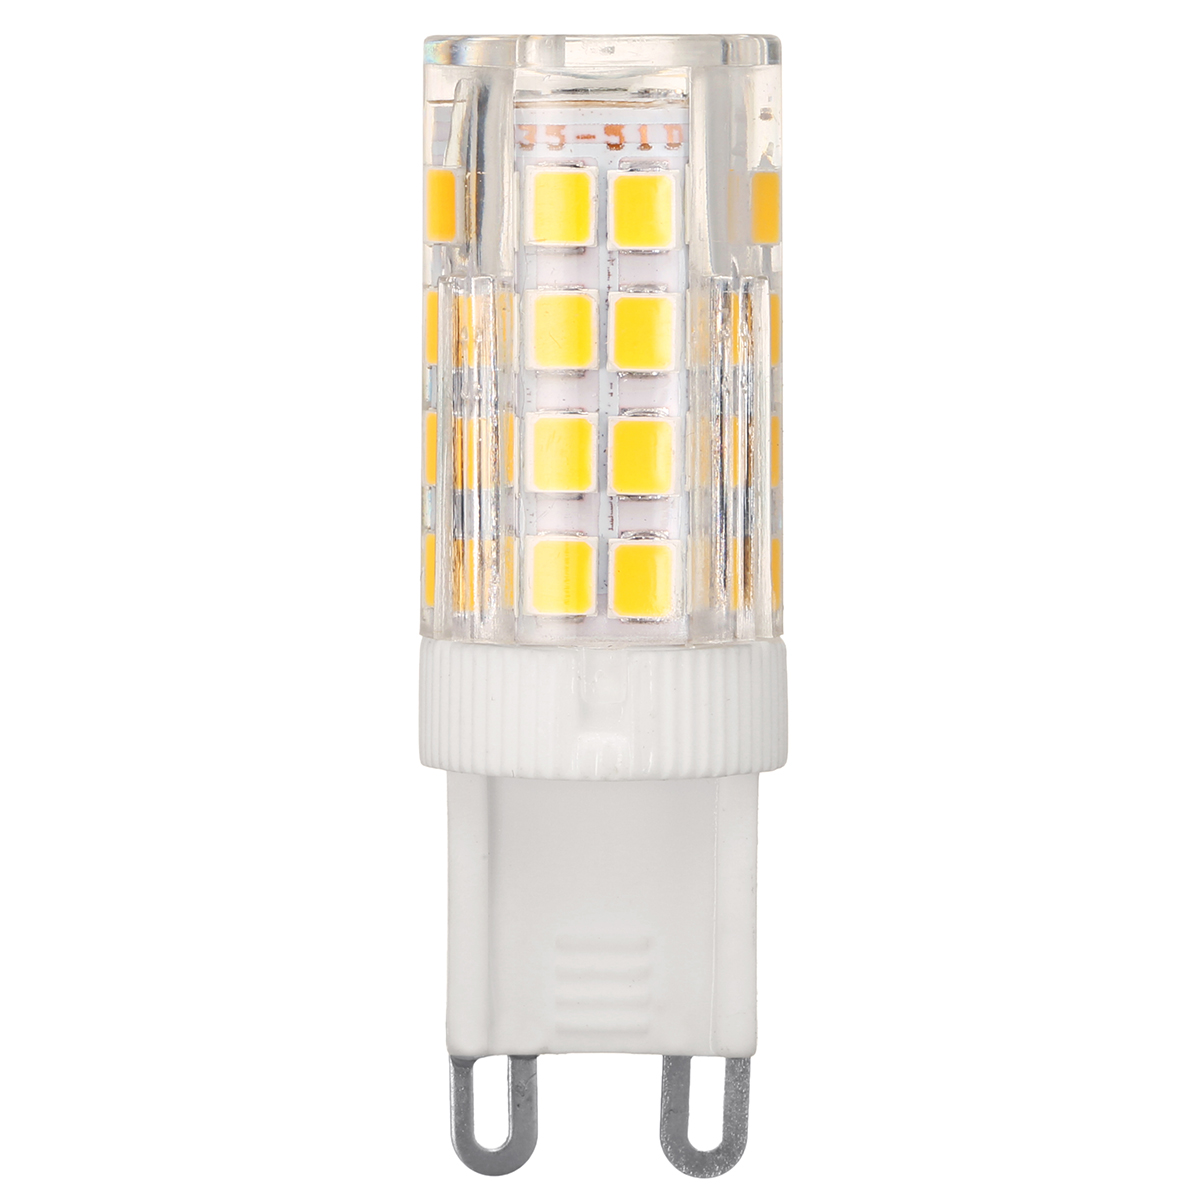 Led G9 5w Arilux E14 G9 5w Smd2835 Pure White Warm White Led Corn Light Bulb No Flicker Ac220v